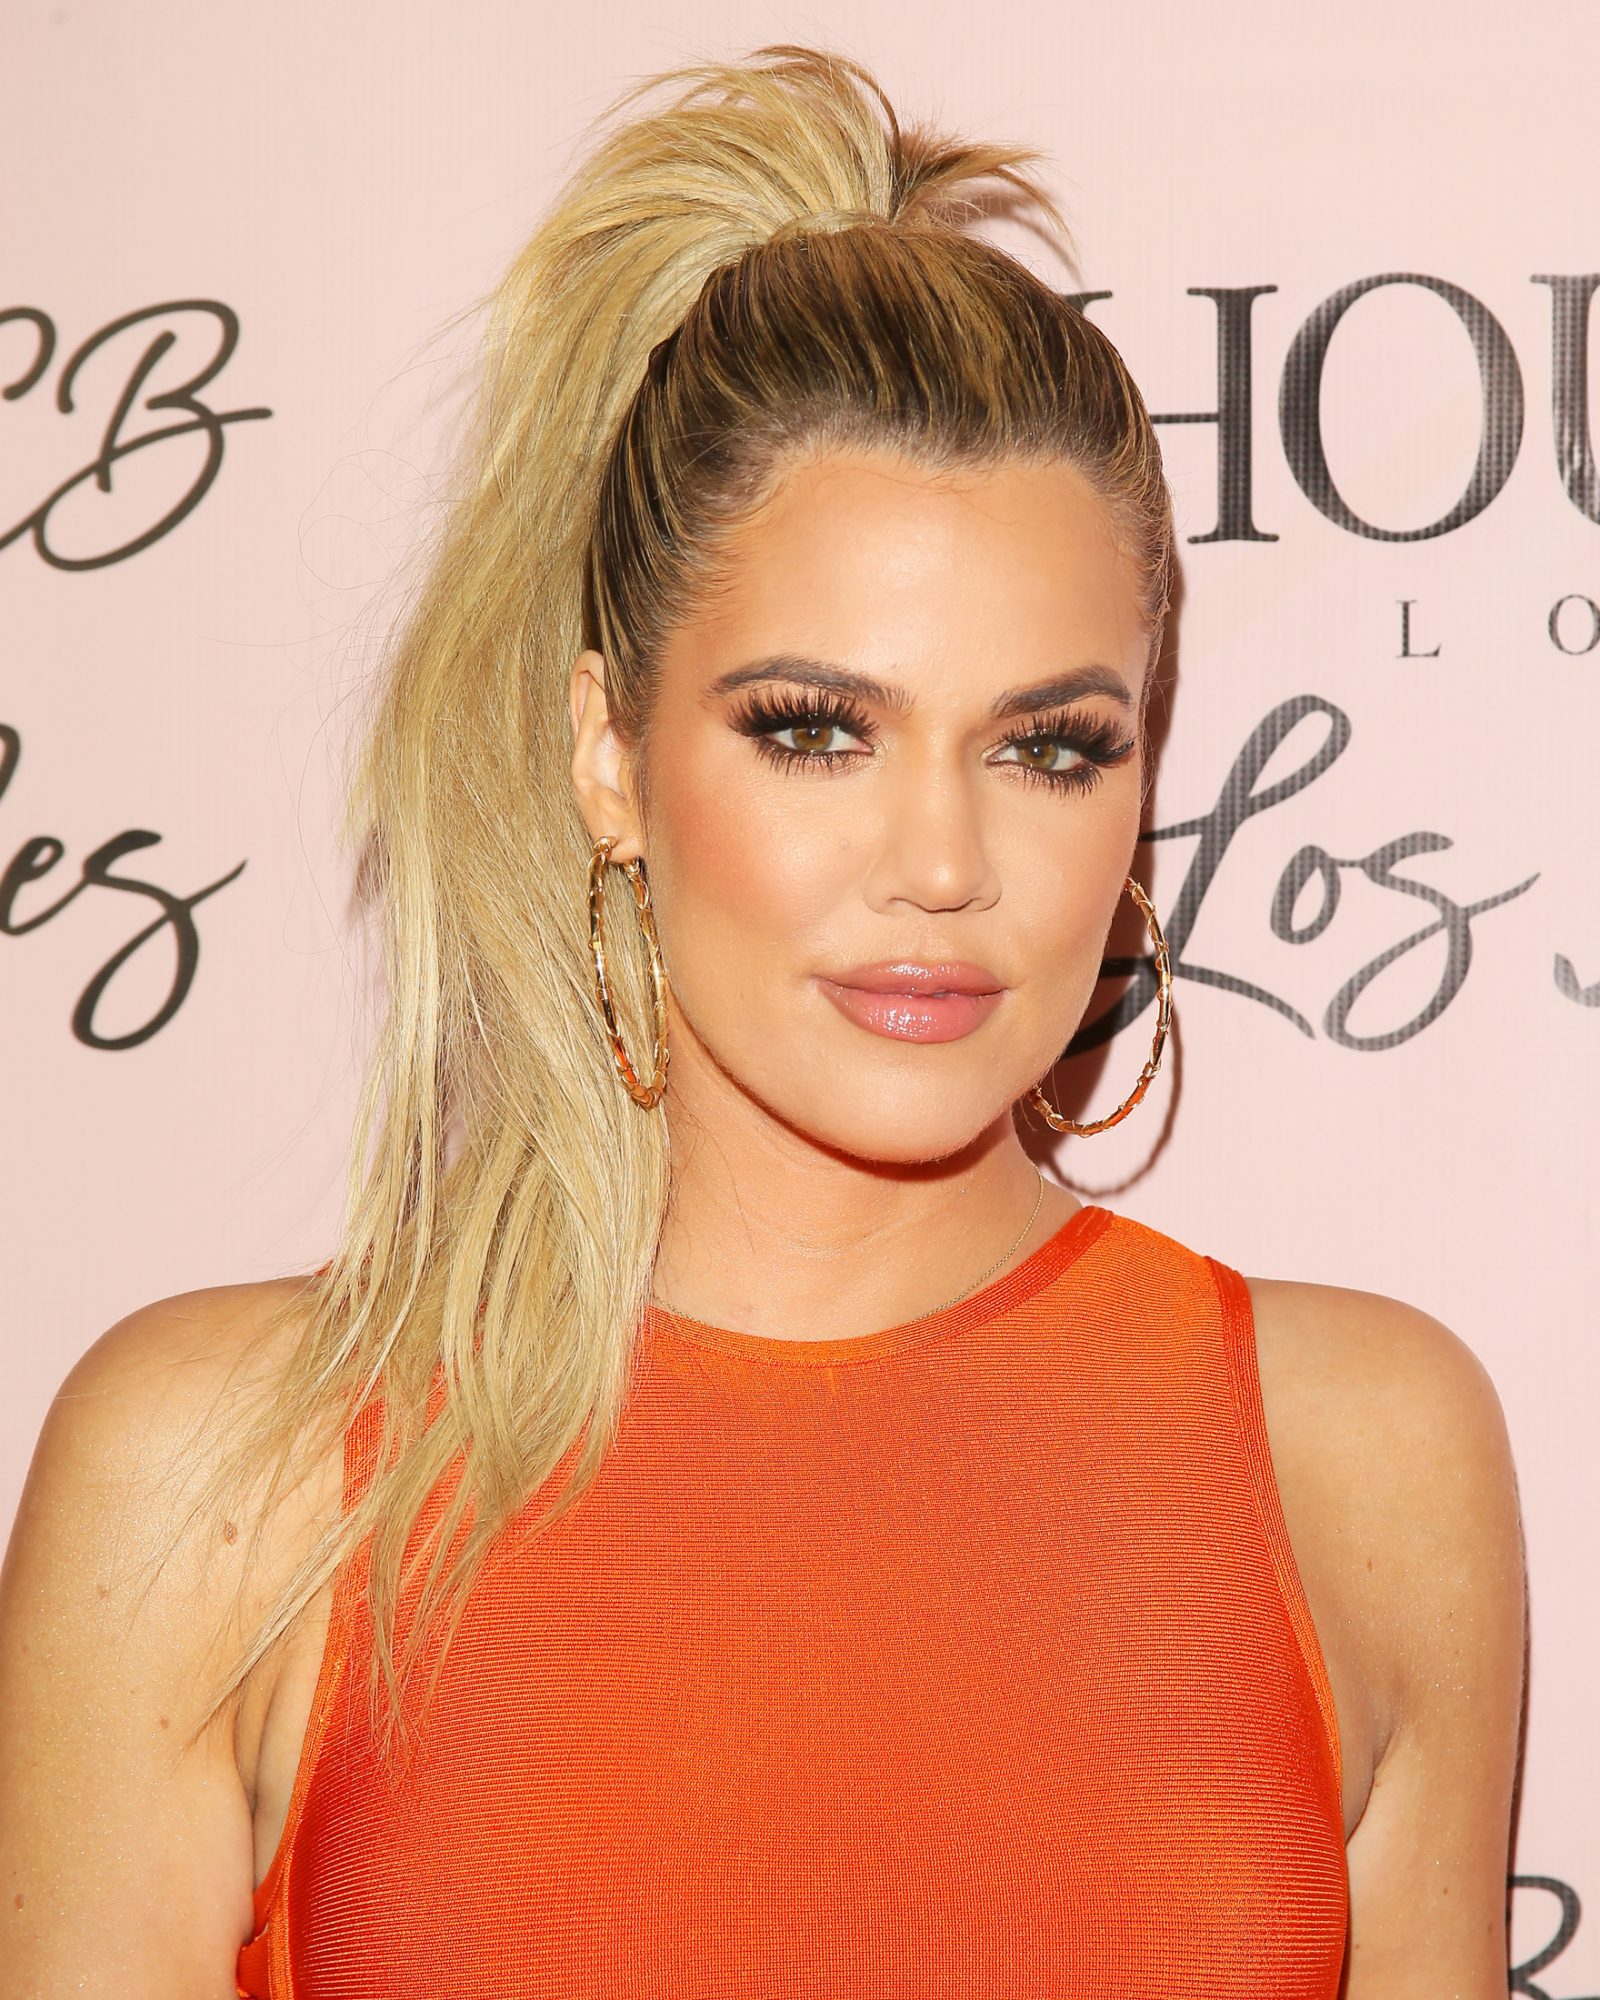 Khloe Kardashian - May 14, 2016 - LEAD